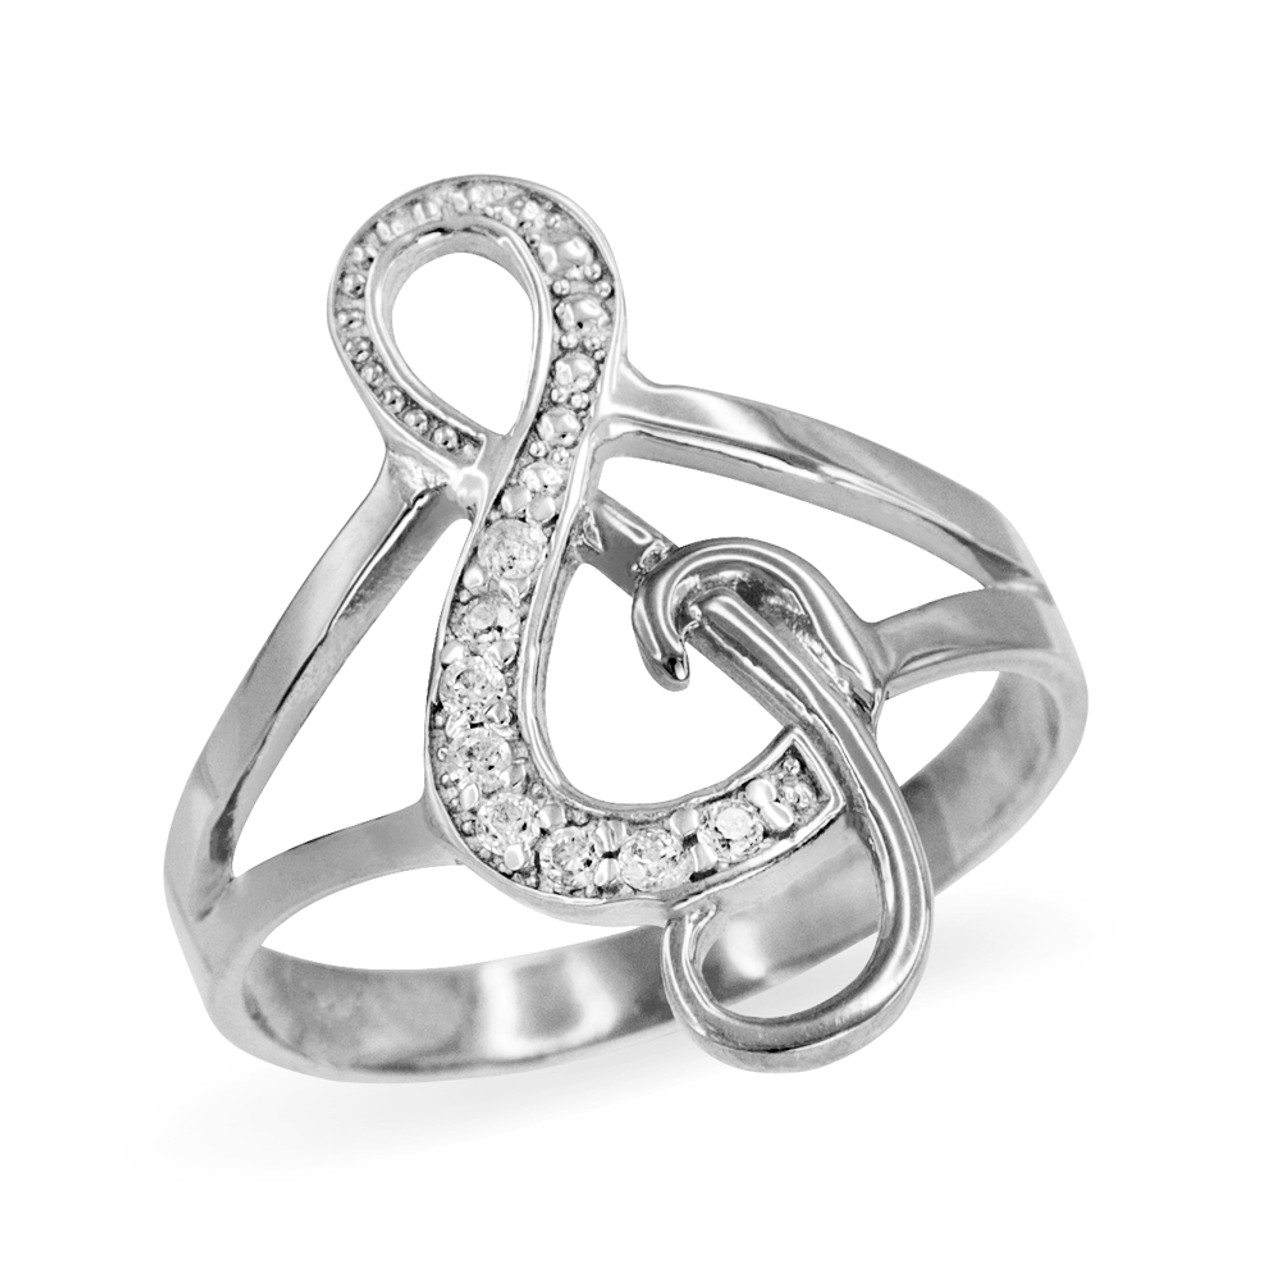 White Gold Diamond Studded Treble Clef Music Ring 9566efb3f78a